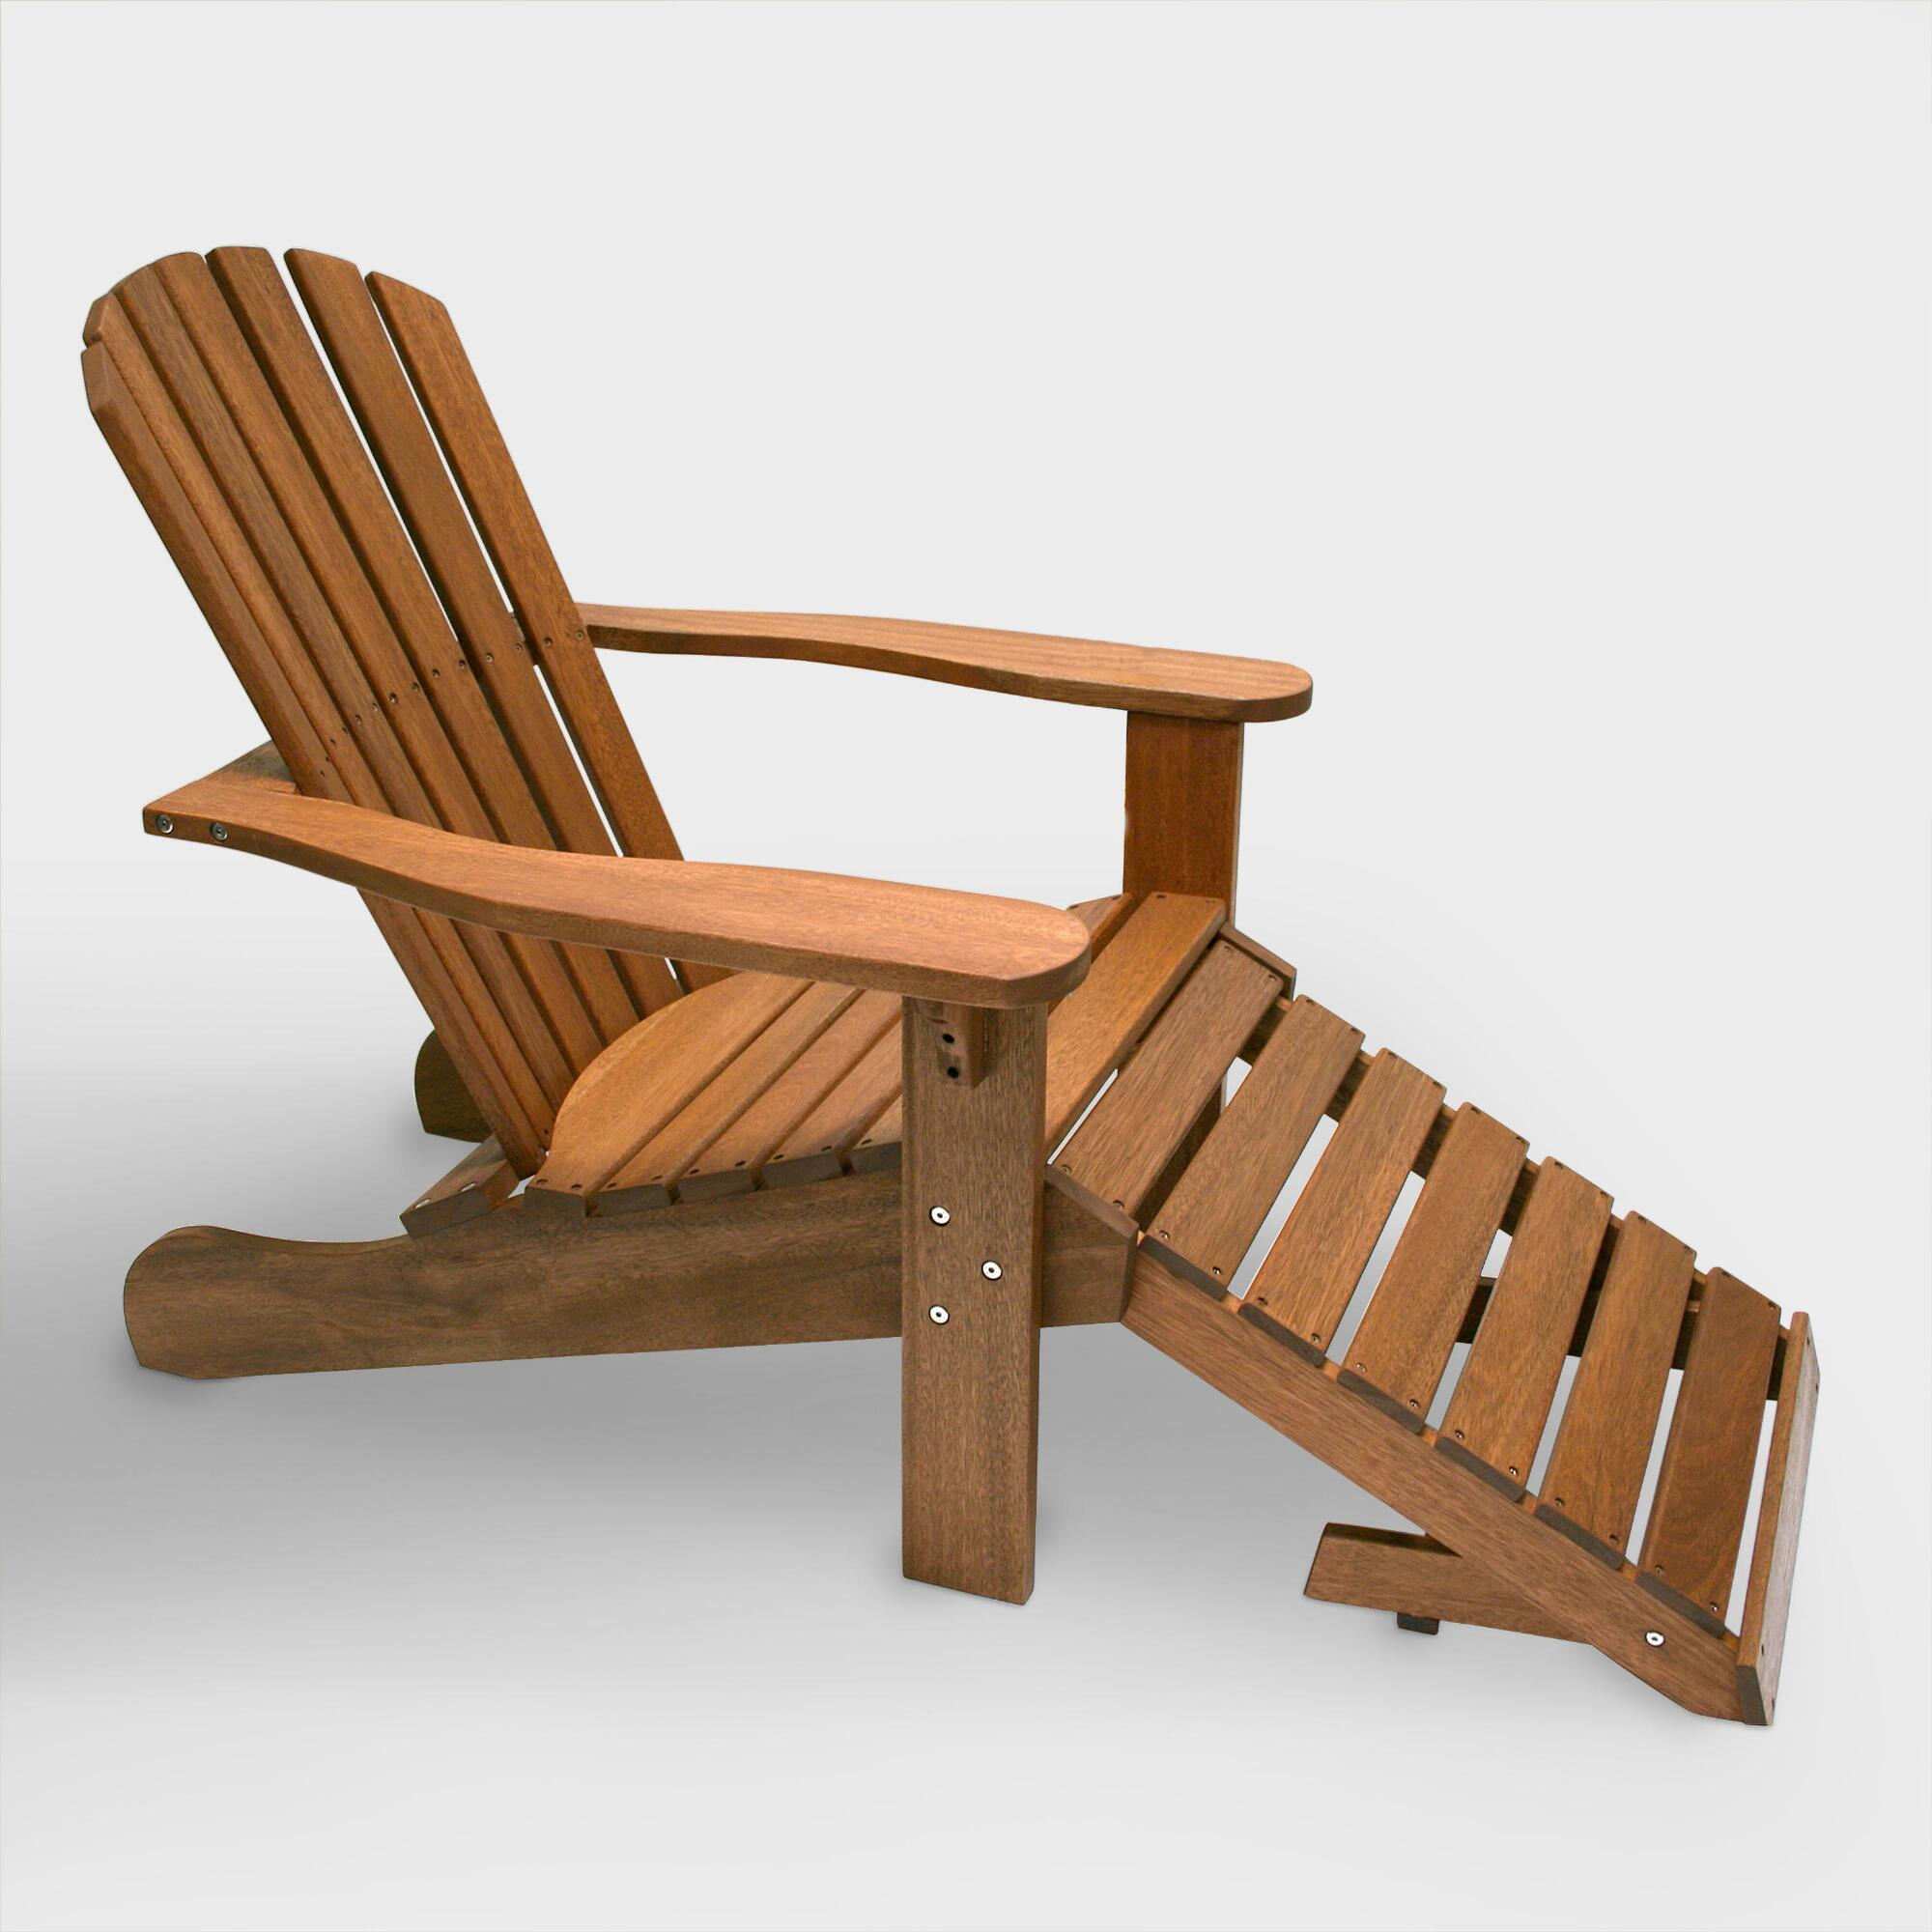 Very Impressive portraiture of Wood Adirondack Chair with Stow Away Ottoman World Market with #432C13 color and 2000x2000 pixels